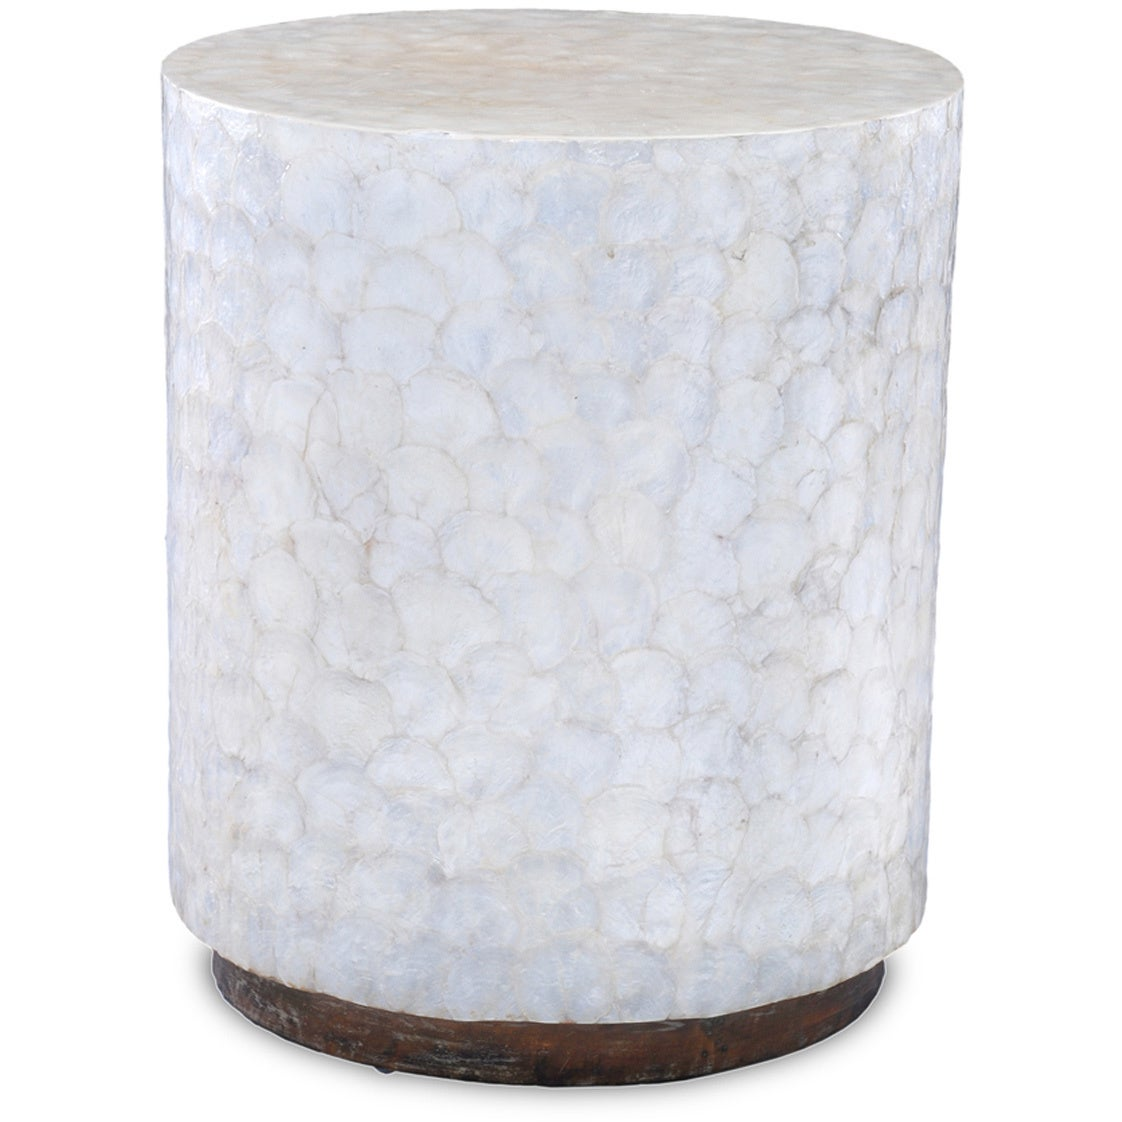 Round White Capiz Coffee Table: Privacy Policy